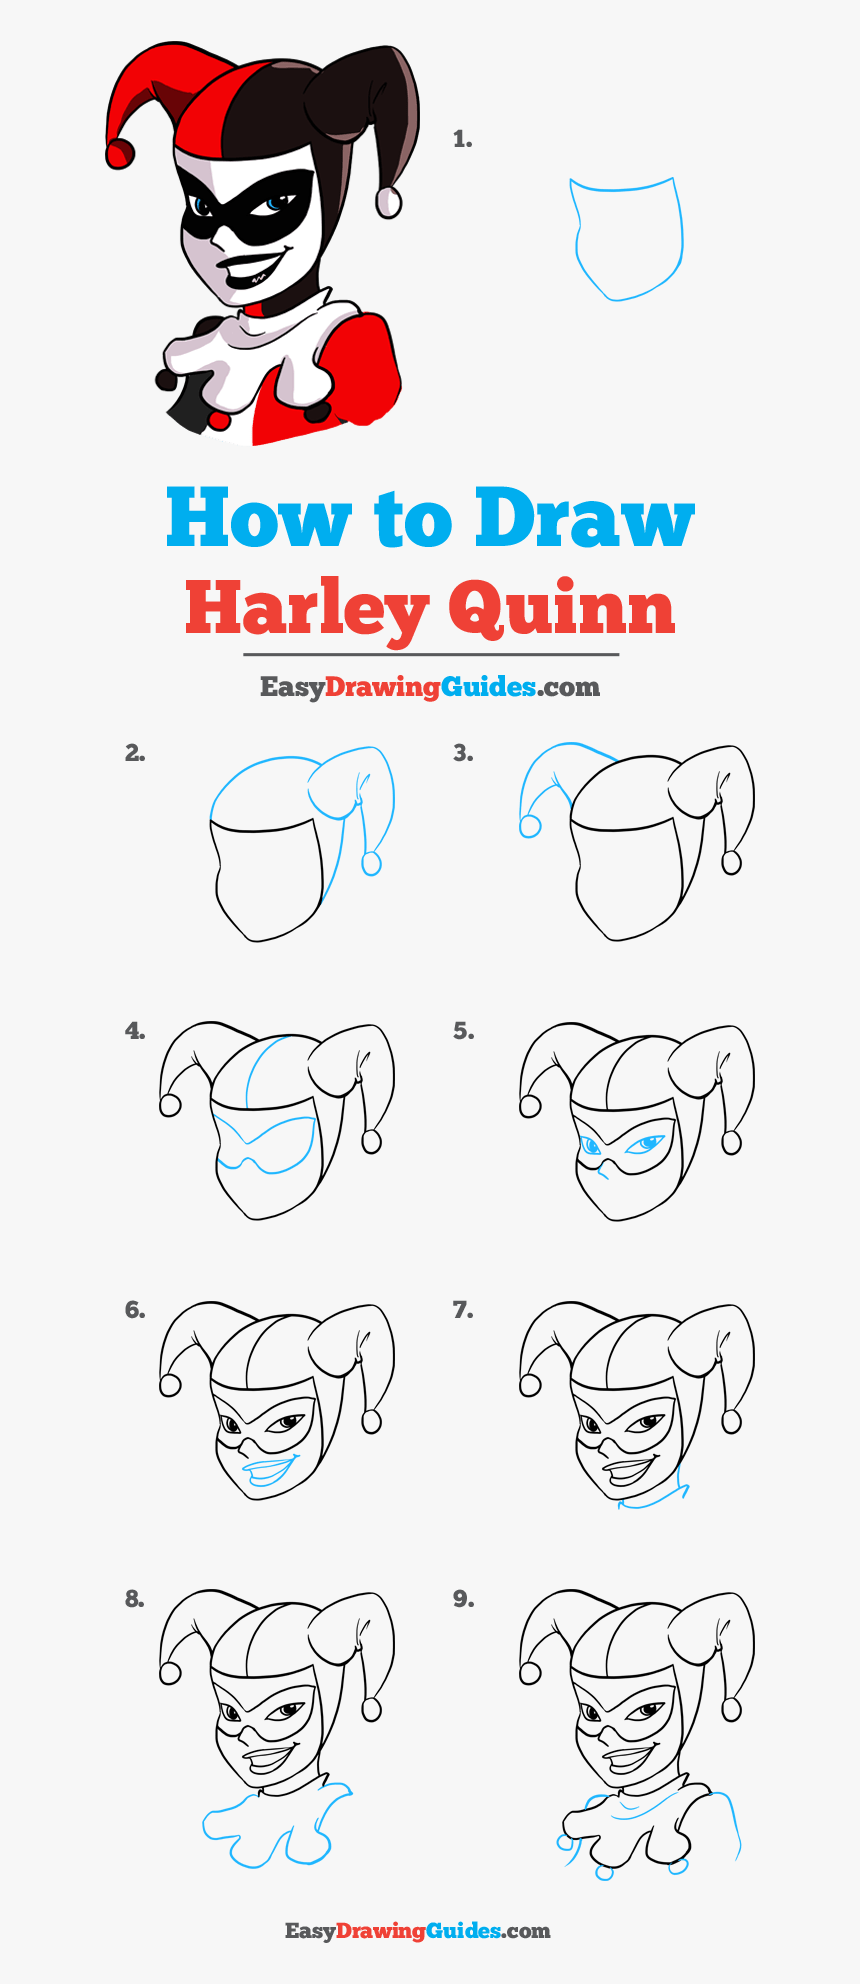 How To Draw Harley Quinn Draw Angry Birds Step By Step Hd Png Download Transparent Png Image Pngitem